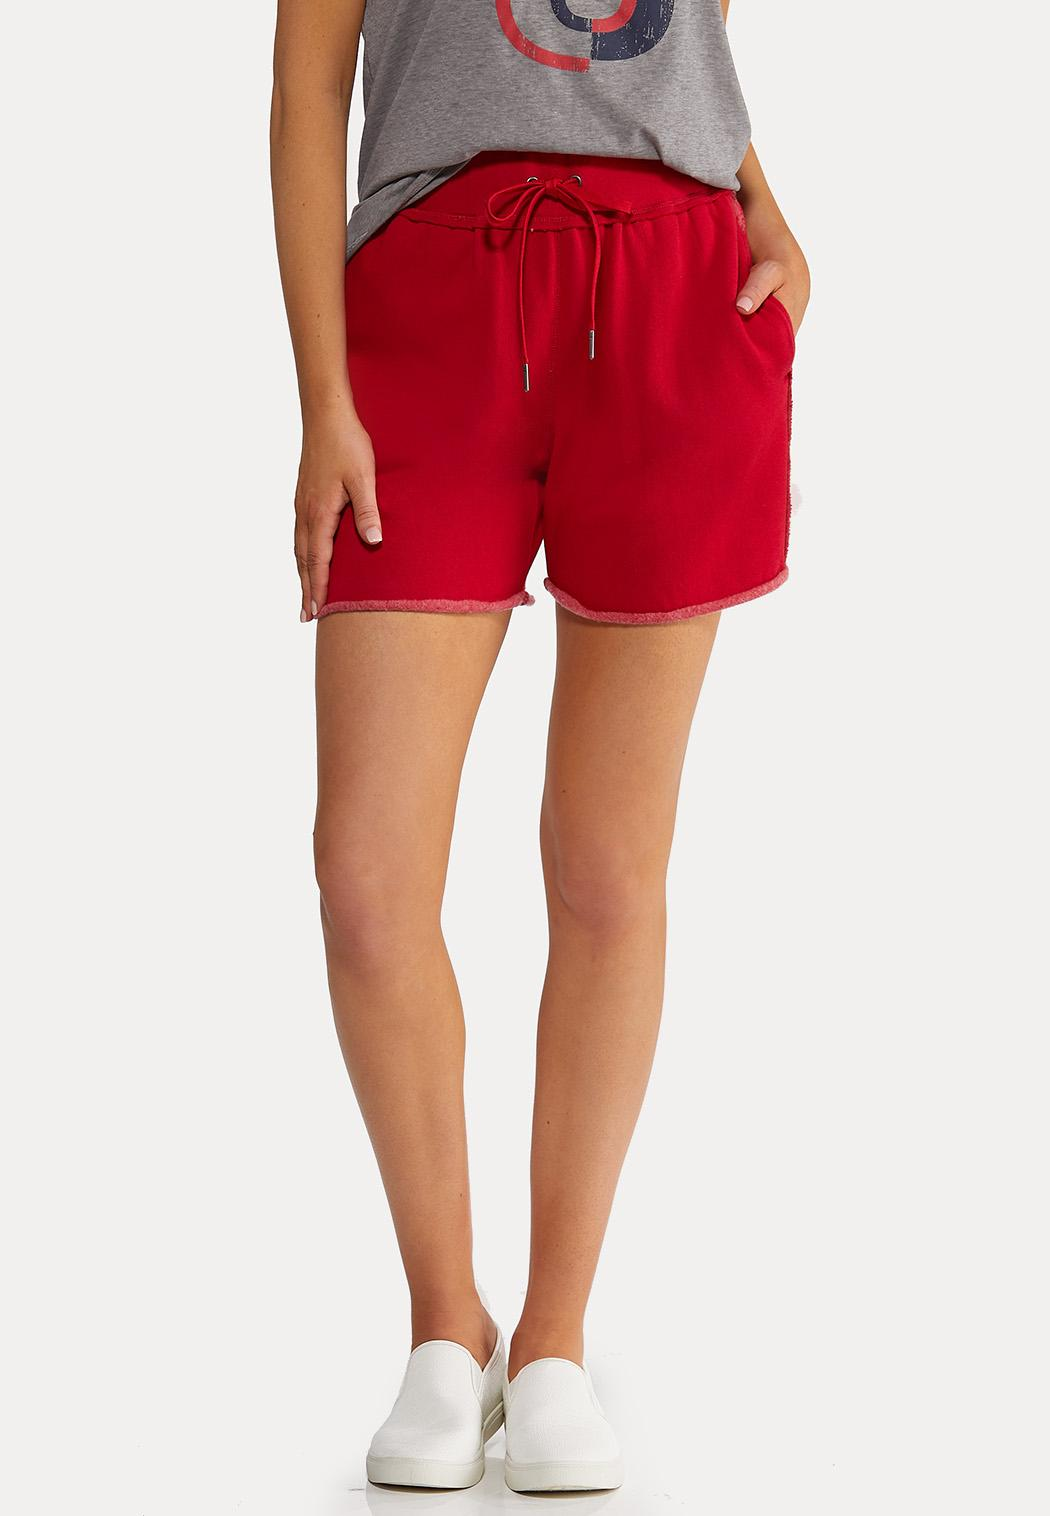 Red Fleece Lined Shorts